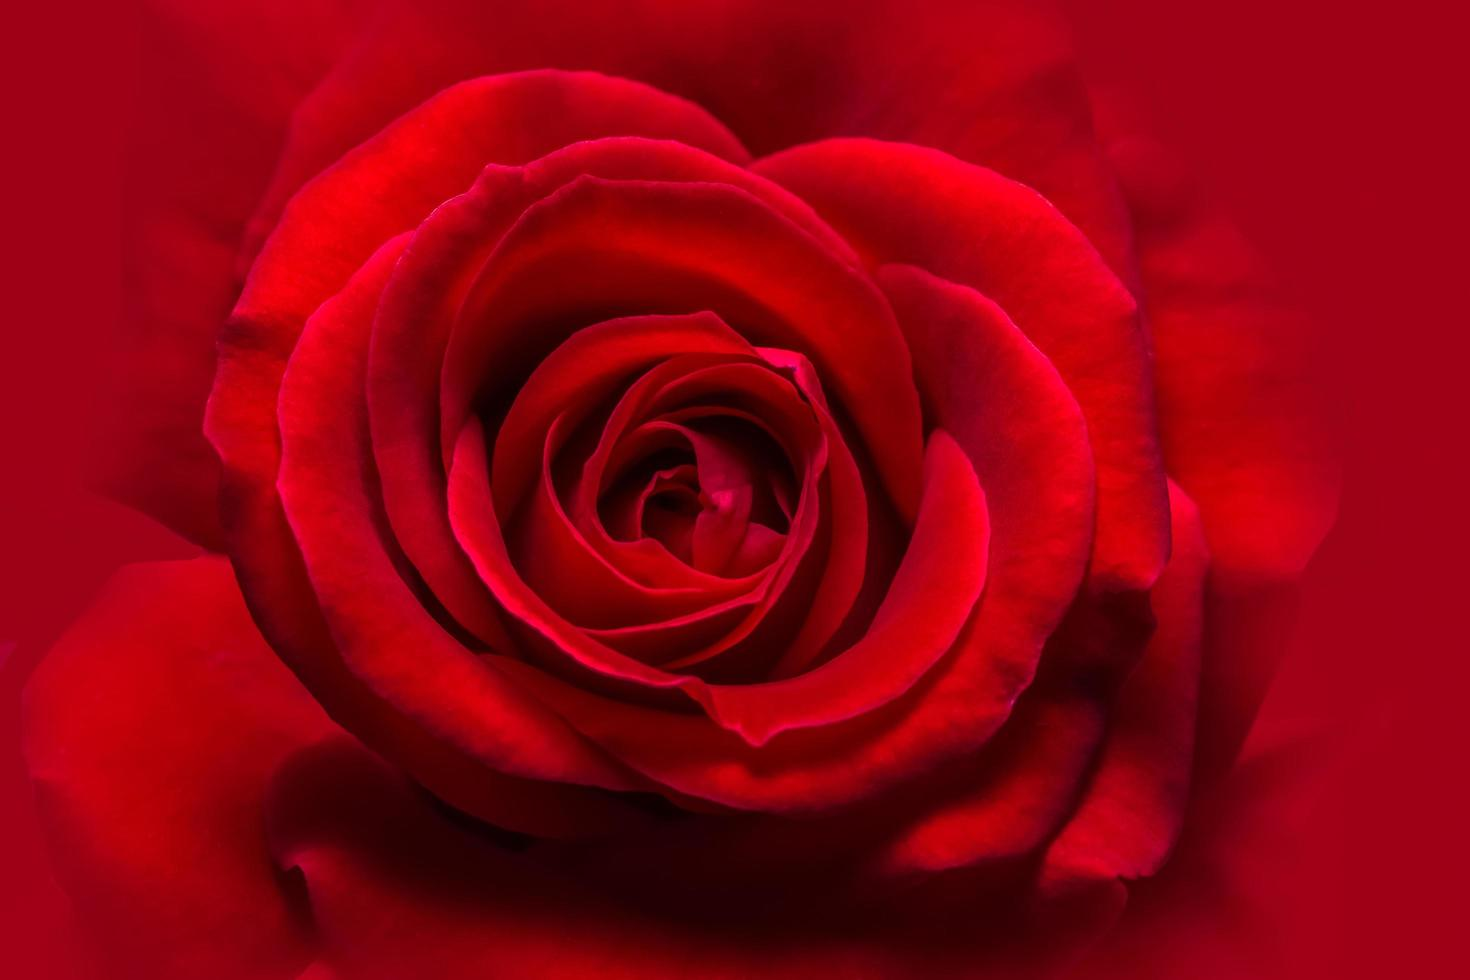 Red rose close-up photo